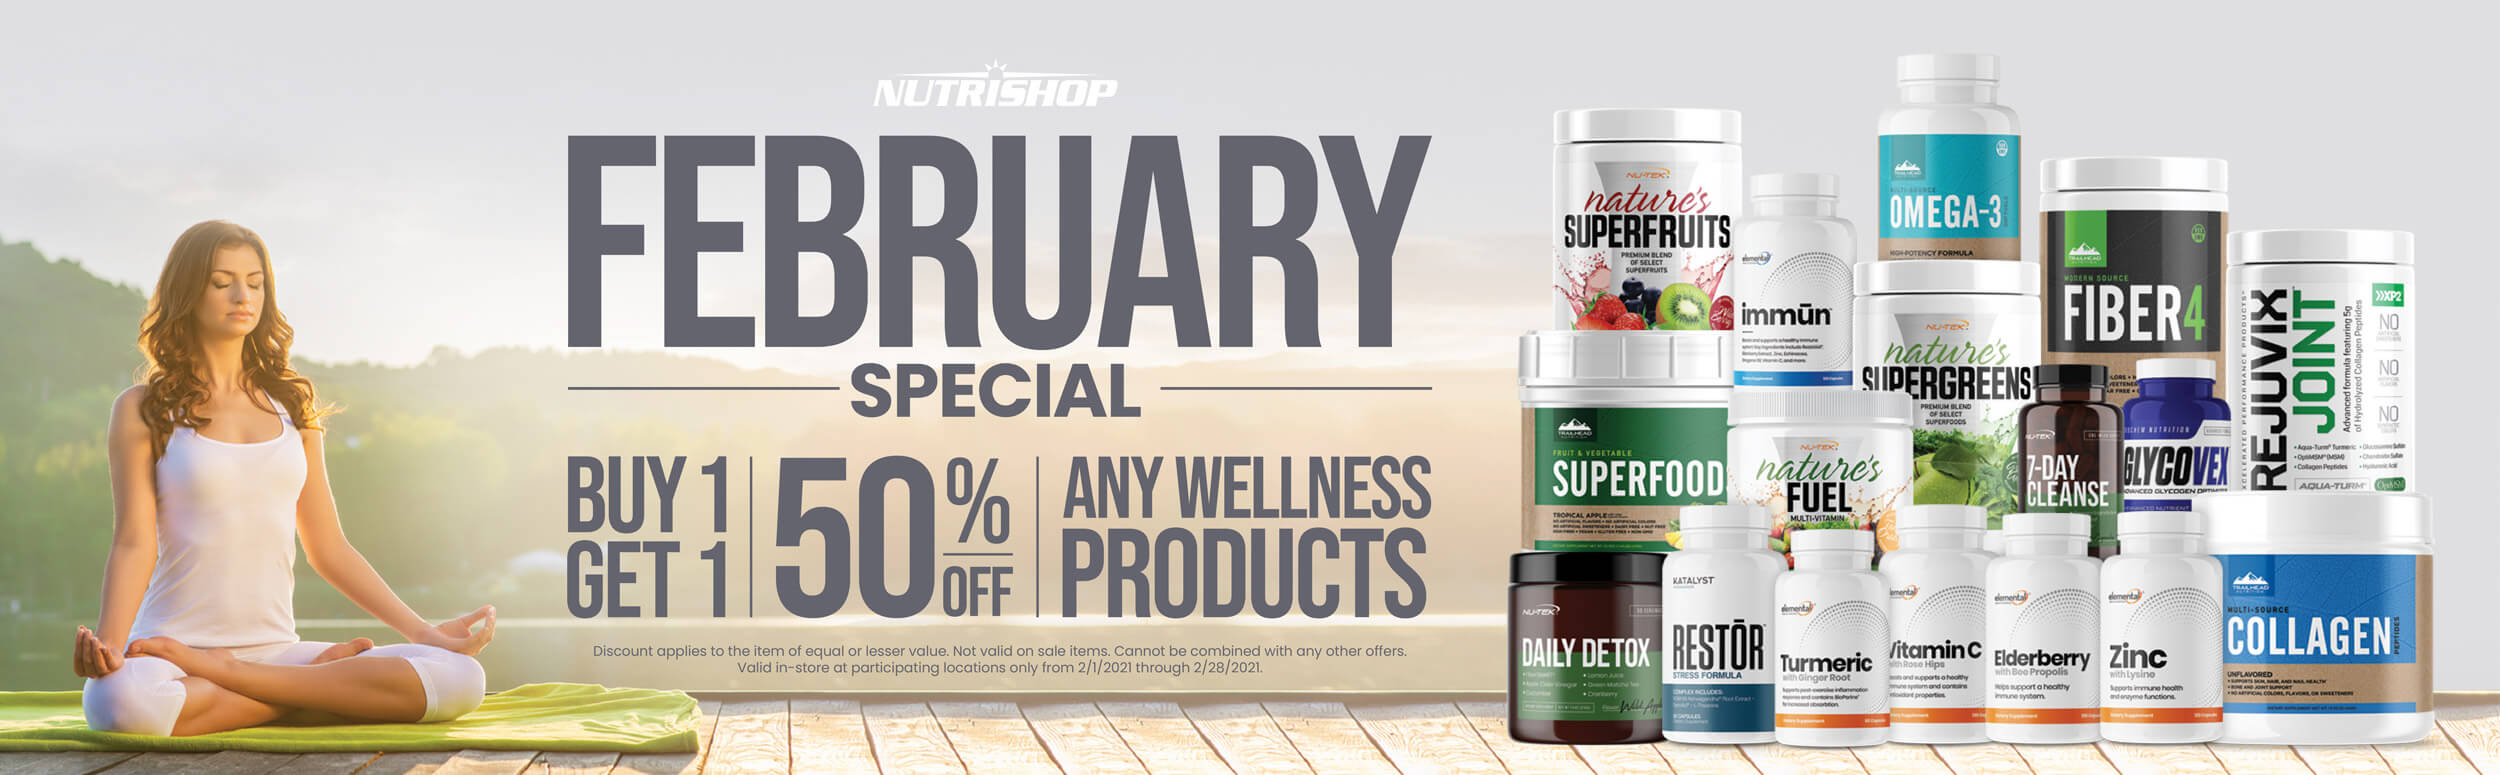 February special buy one get one 50% off any wellness products